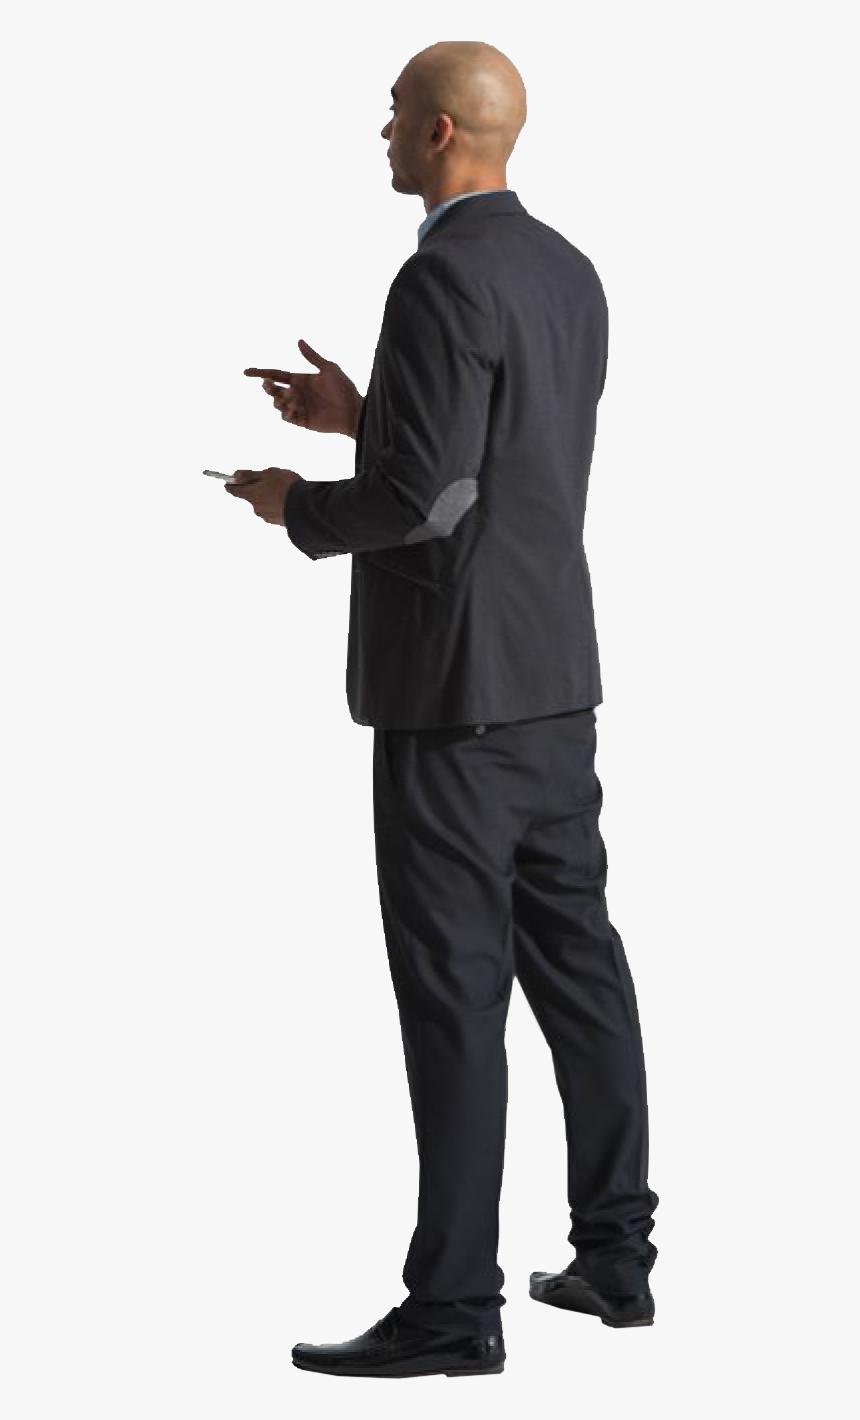 Standing Person Png Download - Architecture Person Png, Transparent Png, Free Download